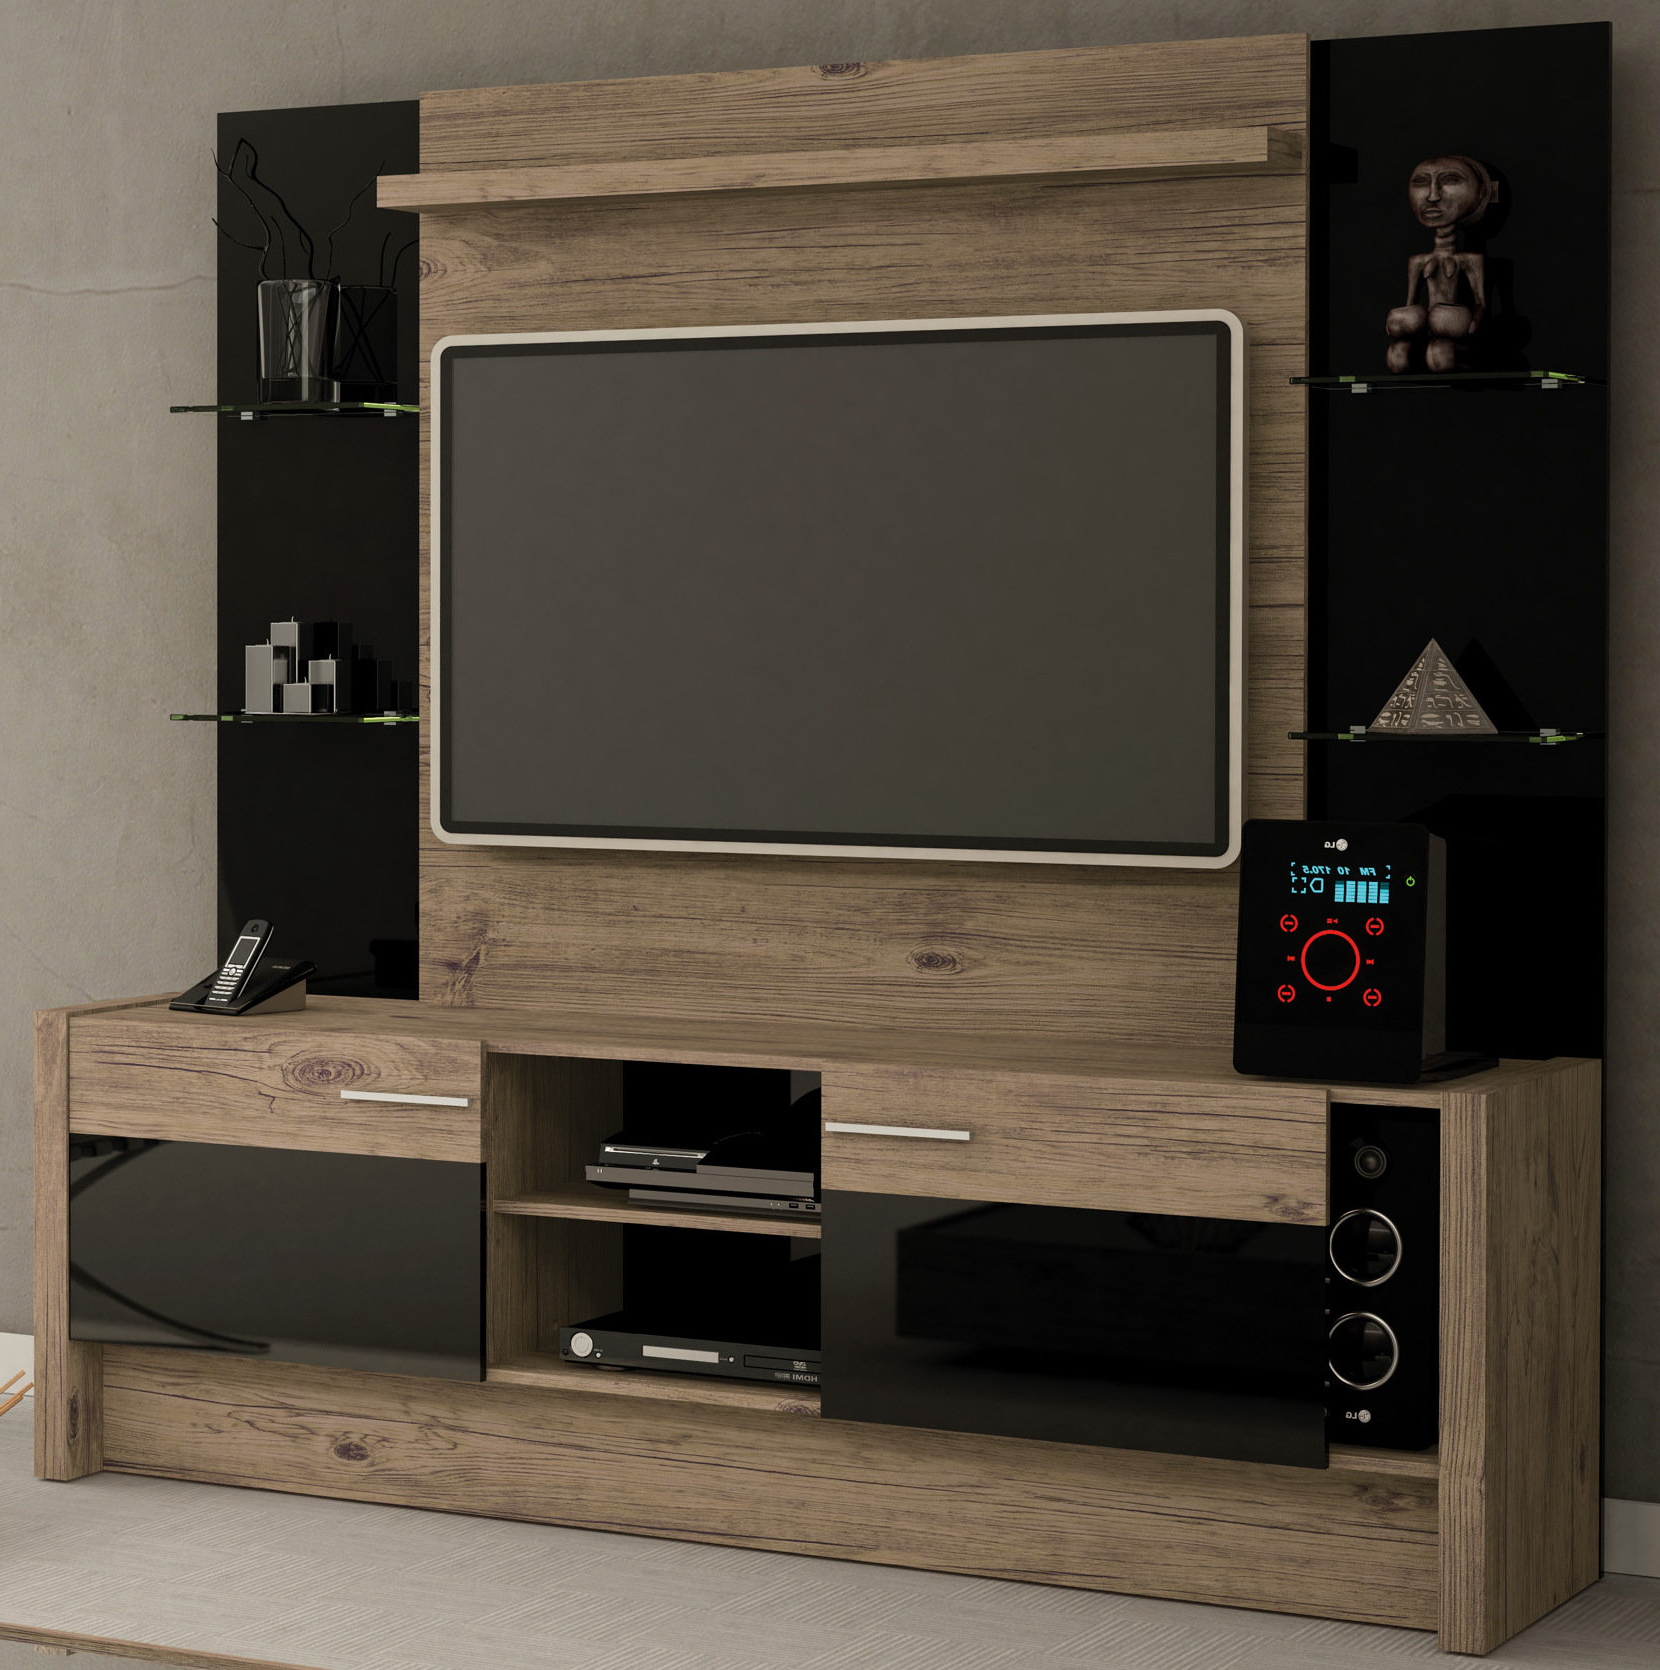 Over Tv Shelves Pertaining To Popular Entertainment Centers You'll Love (View 15 of 20)